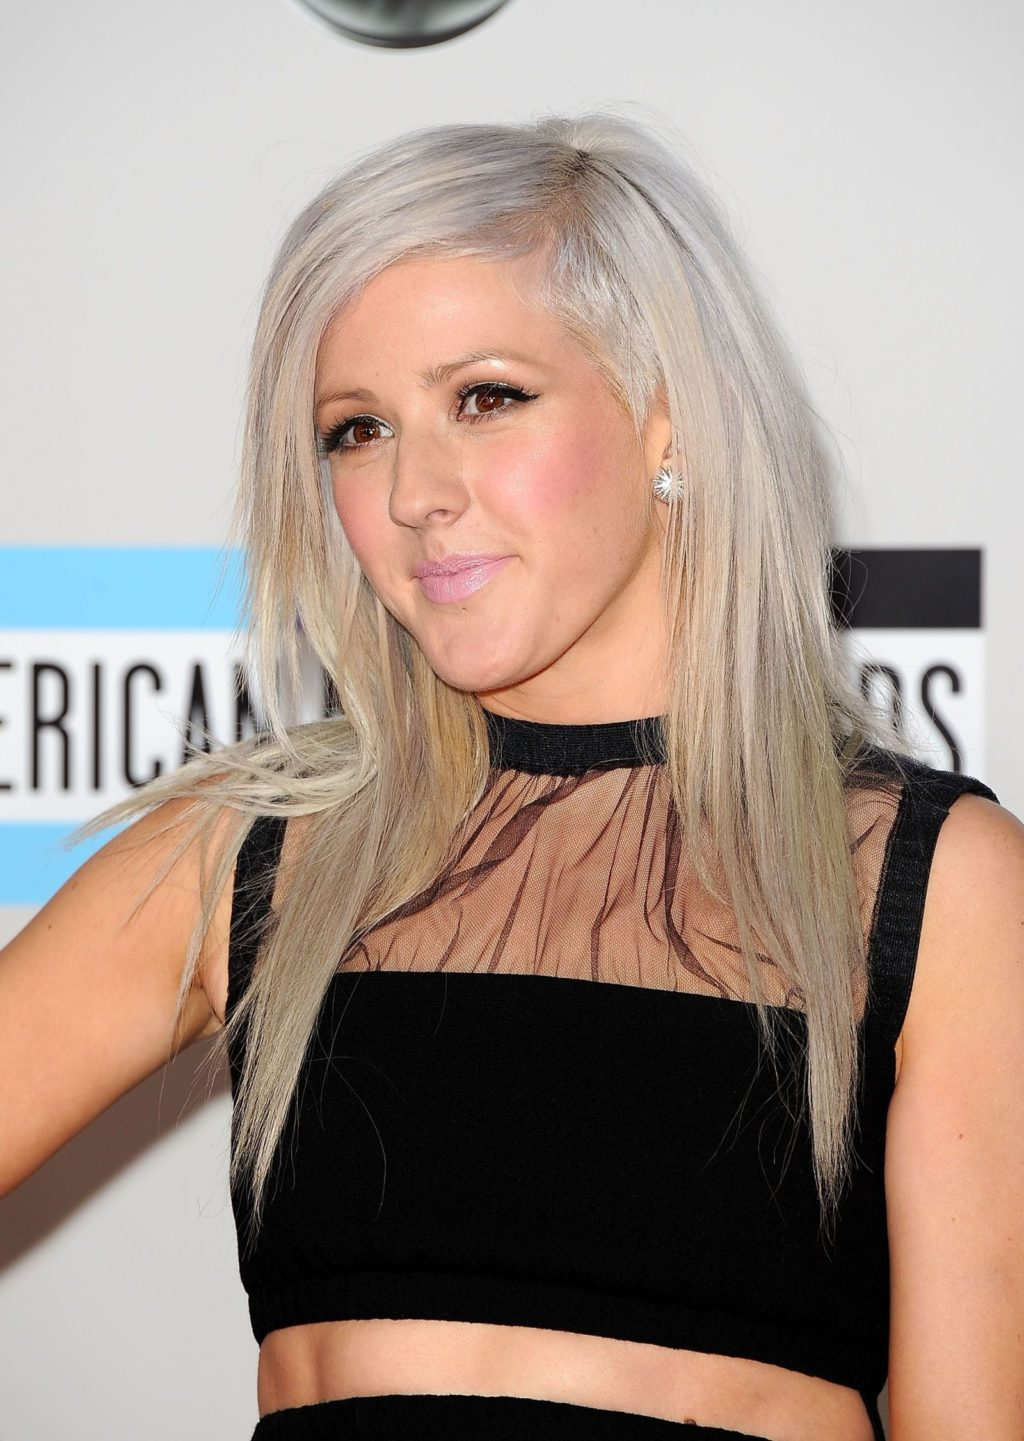 Silver-Blonde-1-1024x1441 Top 10 Hair Color Trends for Blonde Women in 2021